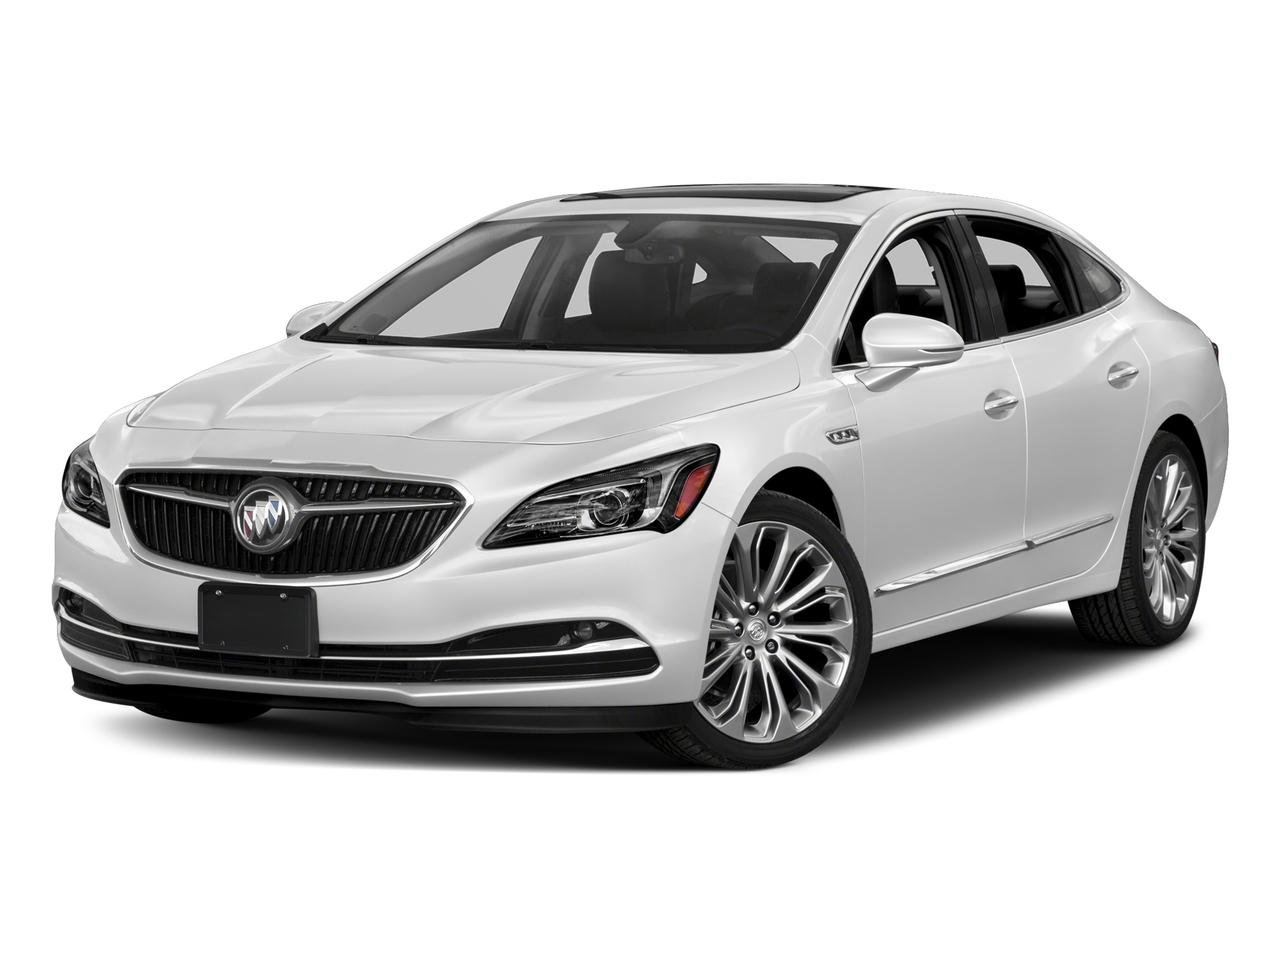 2018 Buick LaCrosse Vehicle Photo in Clifton, NJ 07013